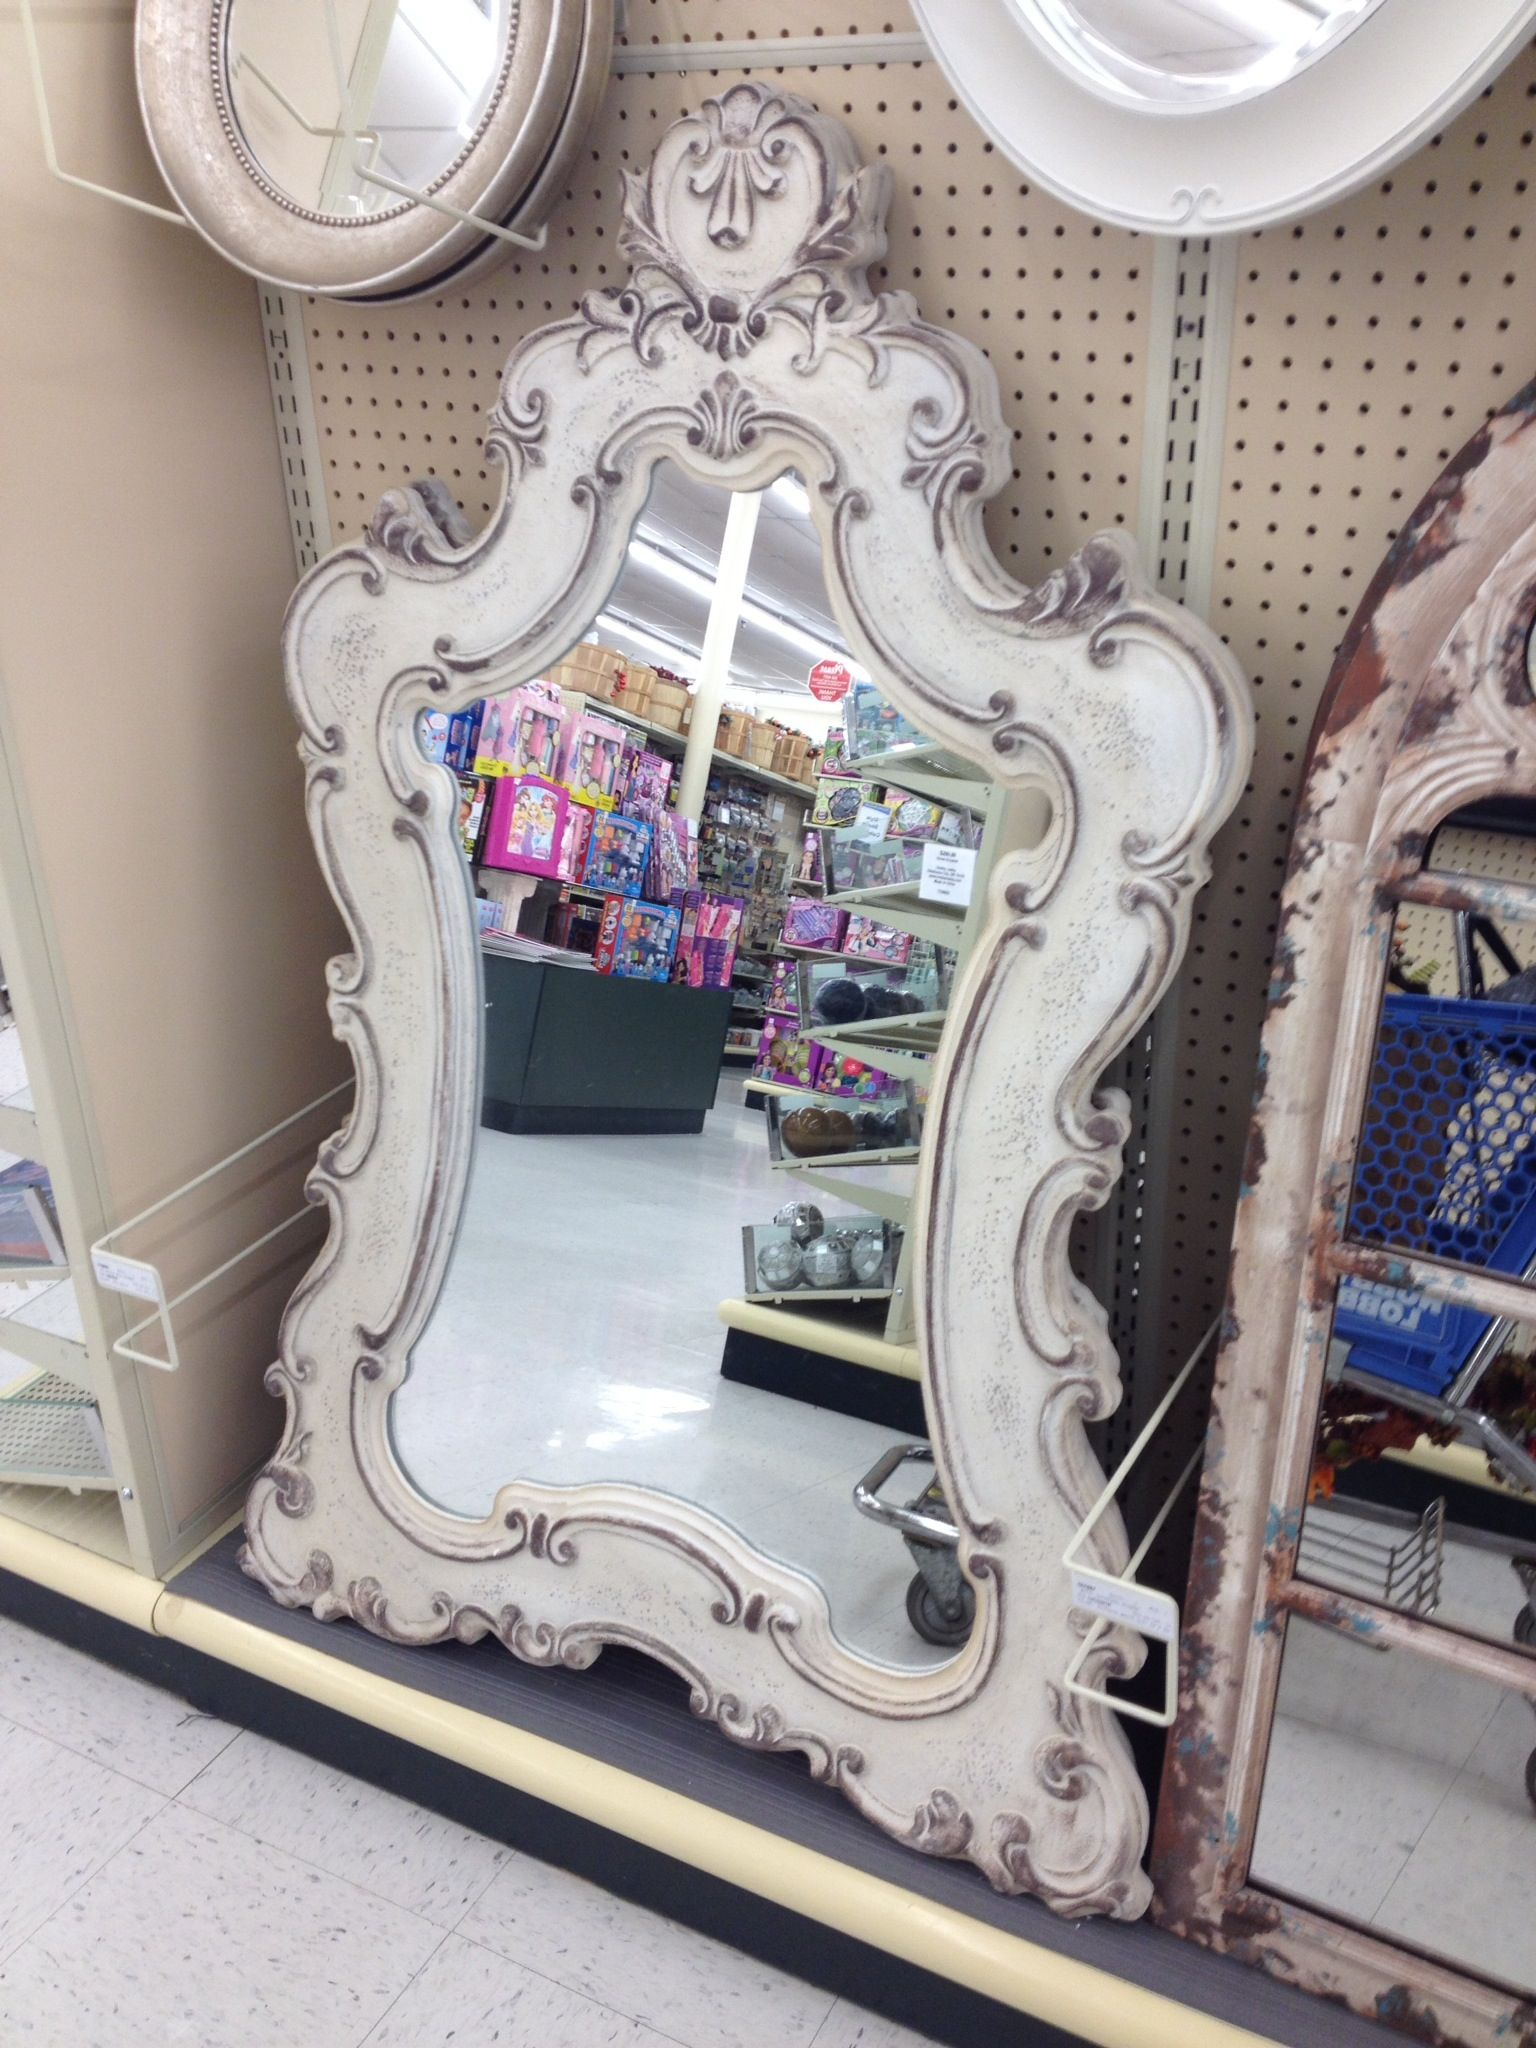 Mirror from hobby lobby bath pinterest lobbies for Bathroom decor at hobby lobby